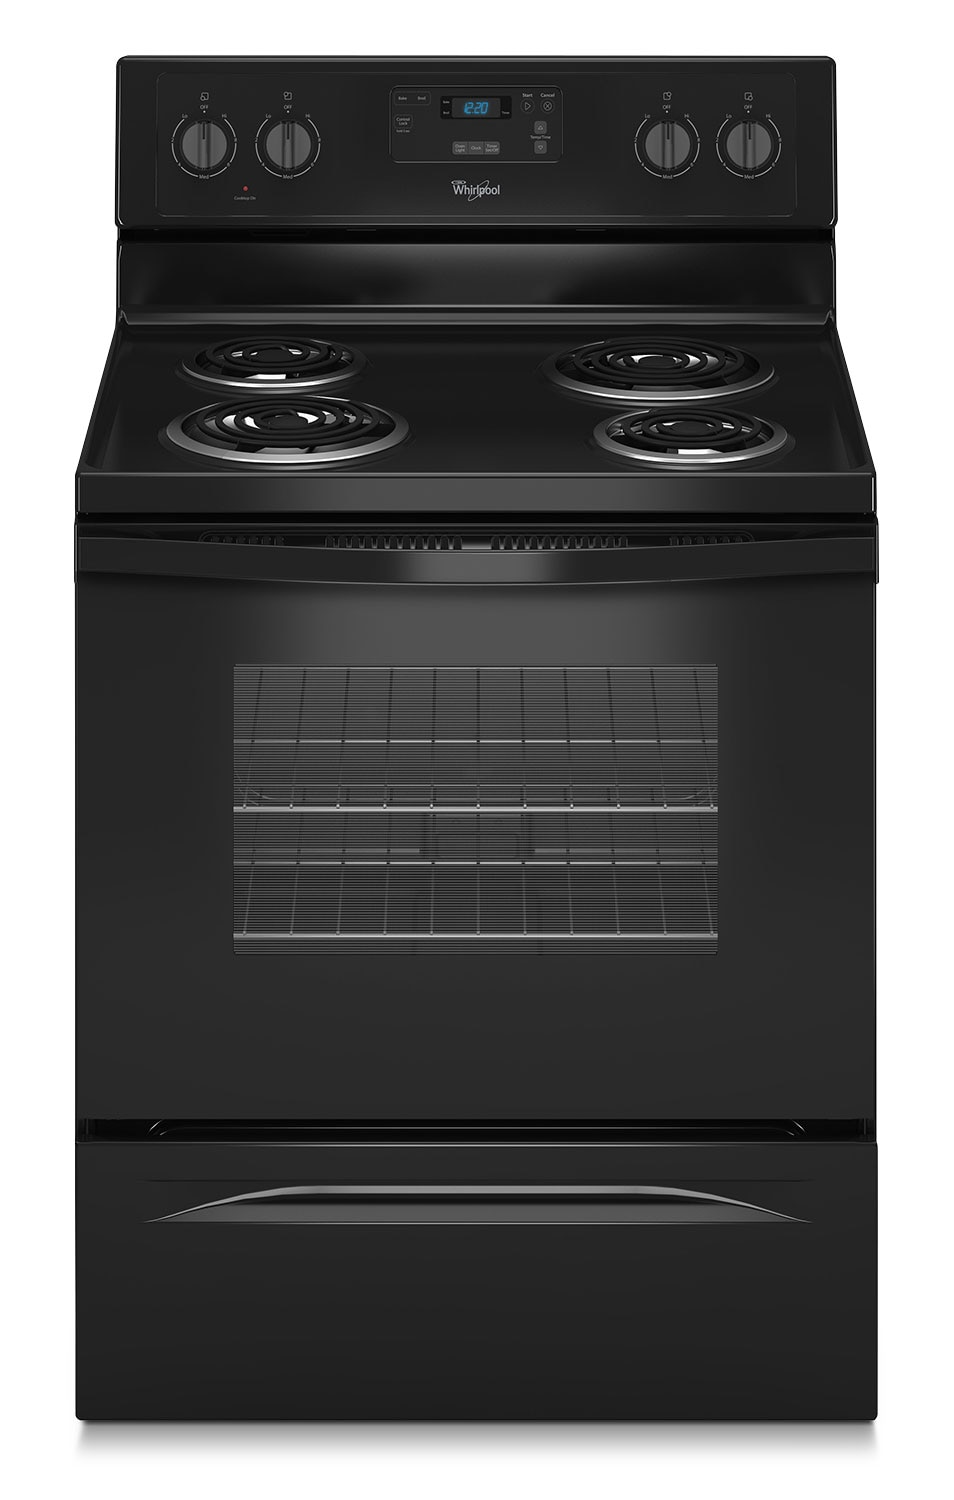 Whirlpool Black Freestanding Electric Range (4.8 Cu. Ft.) - YWFC150M0EB